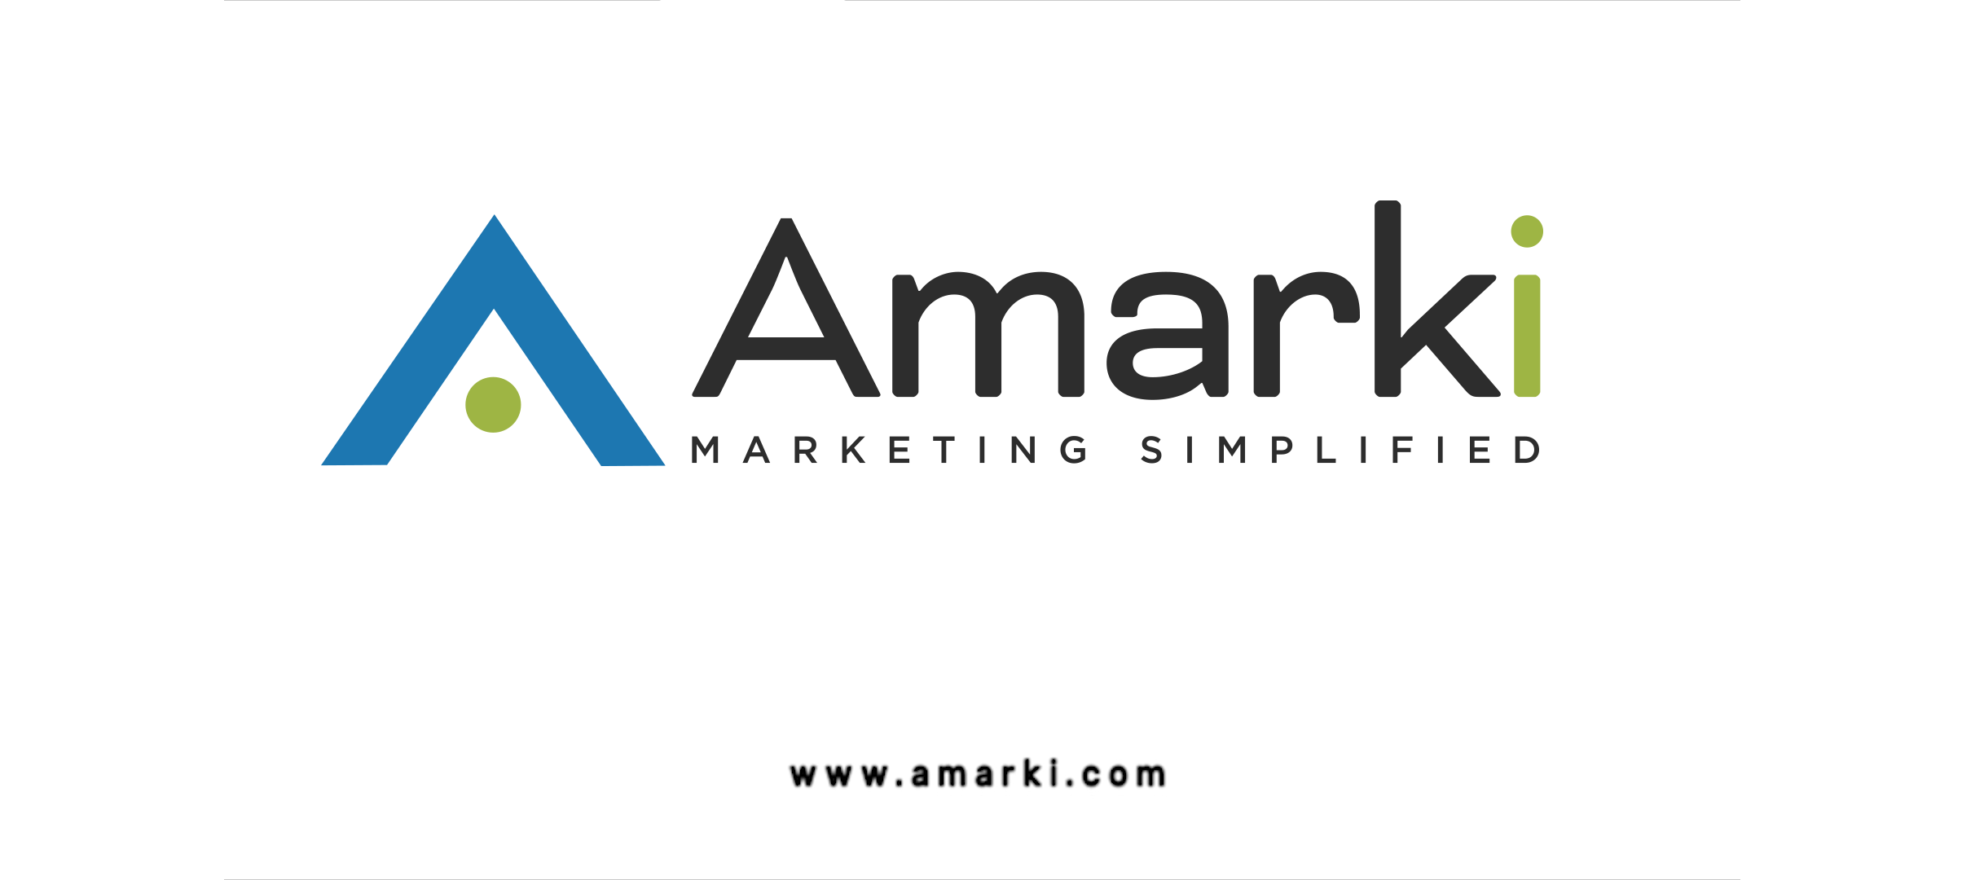 inman.com - Craig C. Rowe - CreeliT Announces Updates To Automated Marketing Solution, Amarki